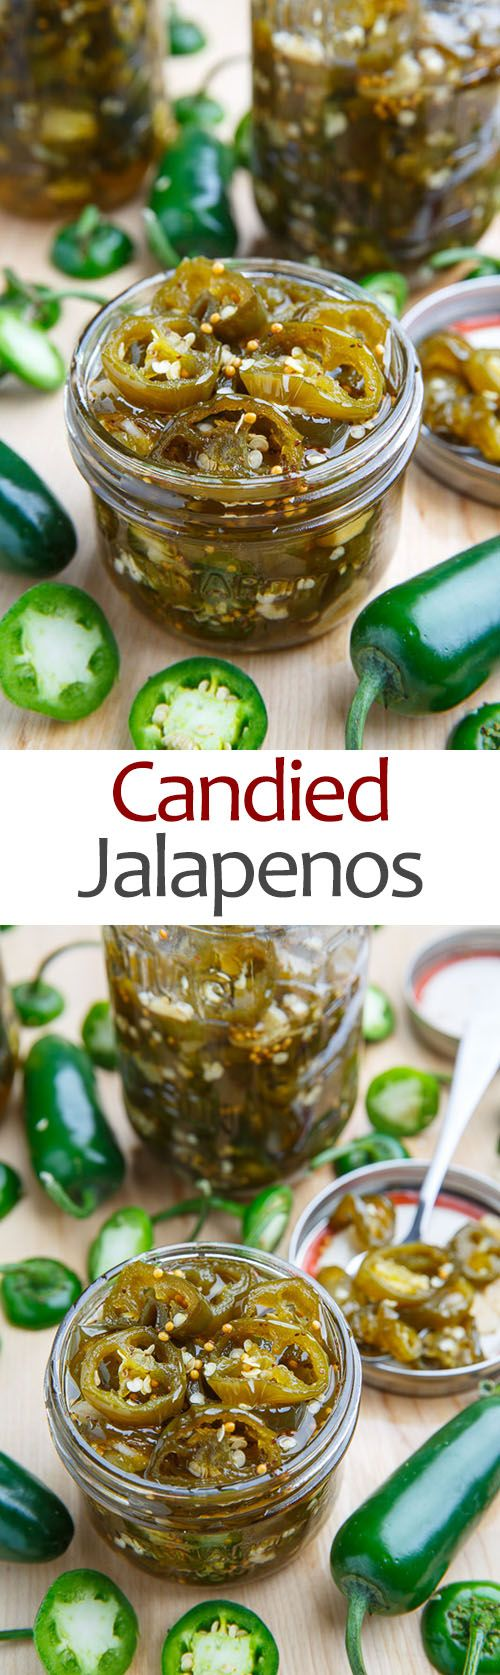 Candied Jalapenos Recipe Candied Jalapenos Canning Recipes Food